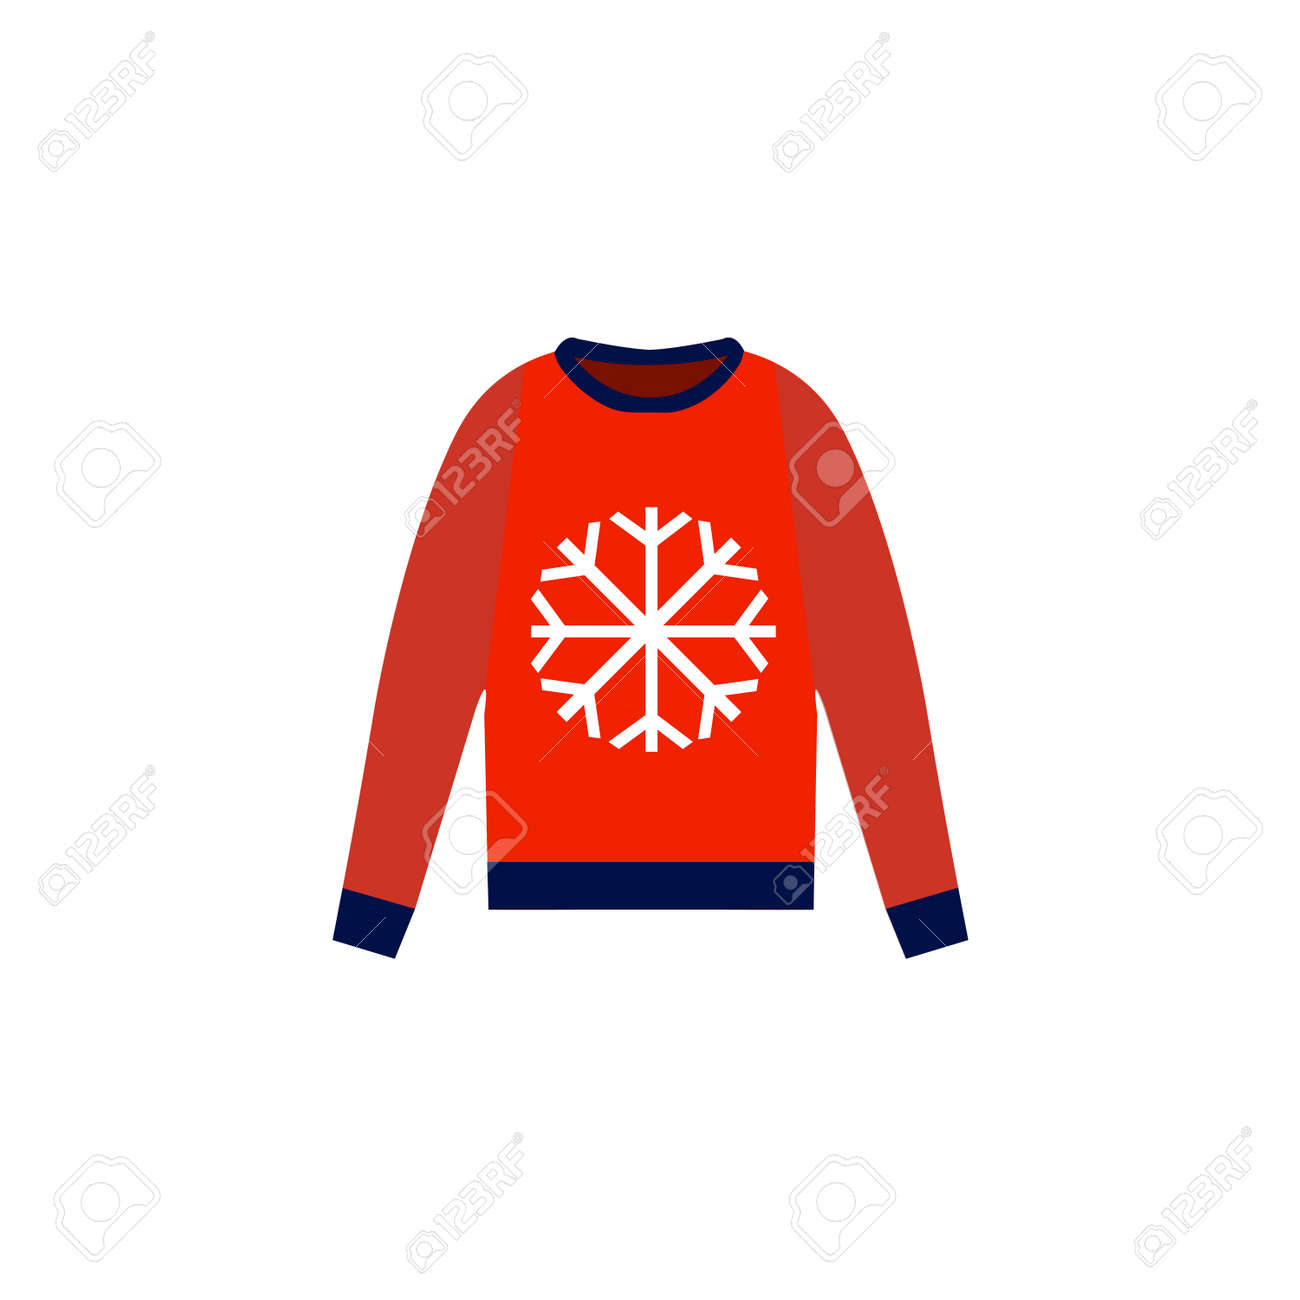 Christmas Jersey Design.Christmas Red Sweater On White Background Flat Design Illustration